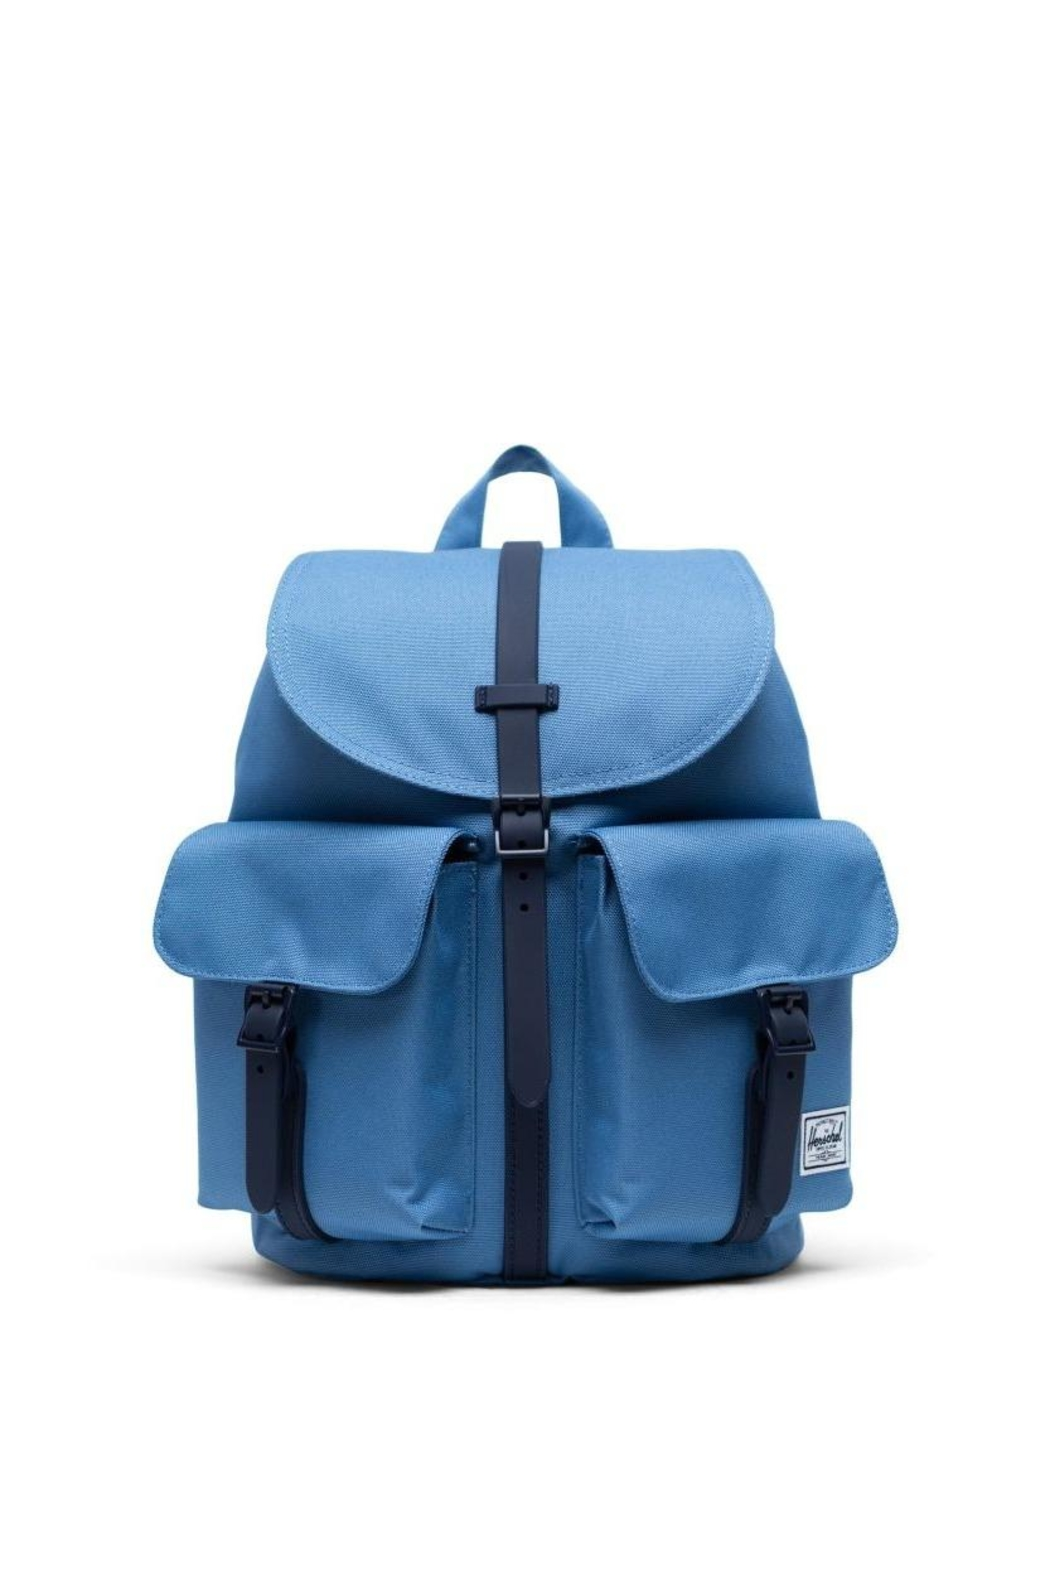 Herschel Supply Co. Small Blue Backpack - Main Image